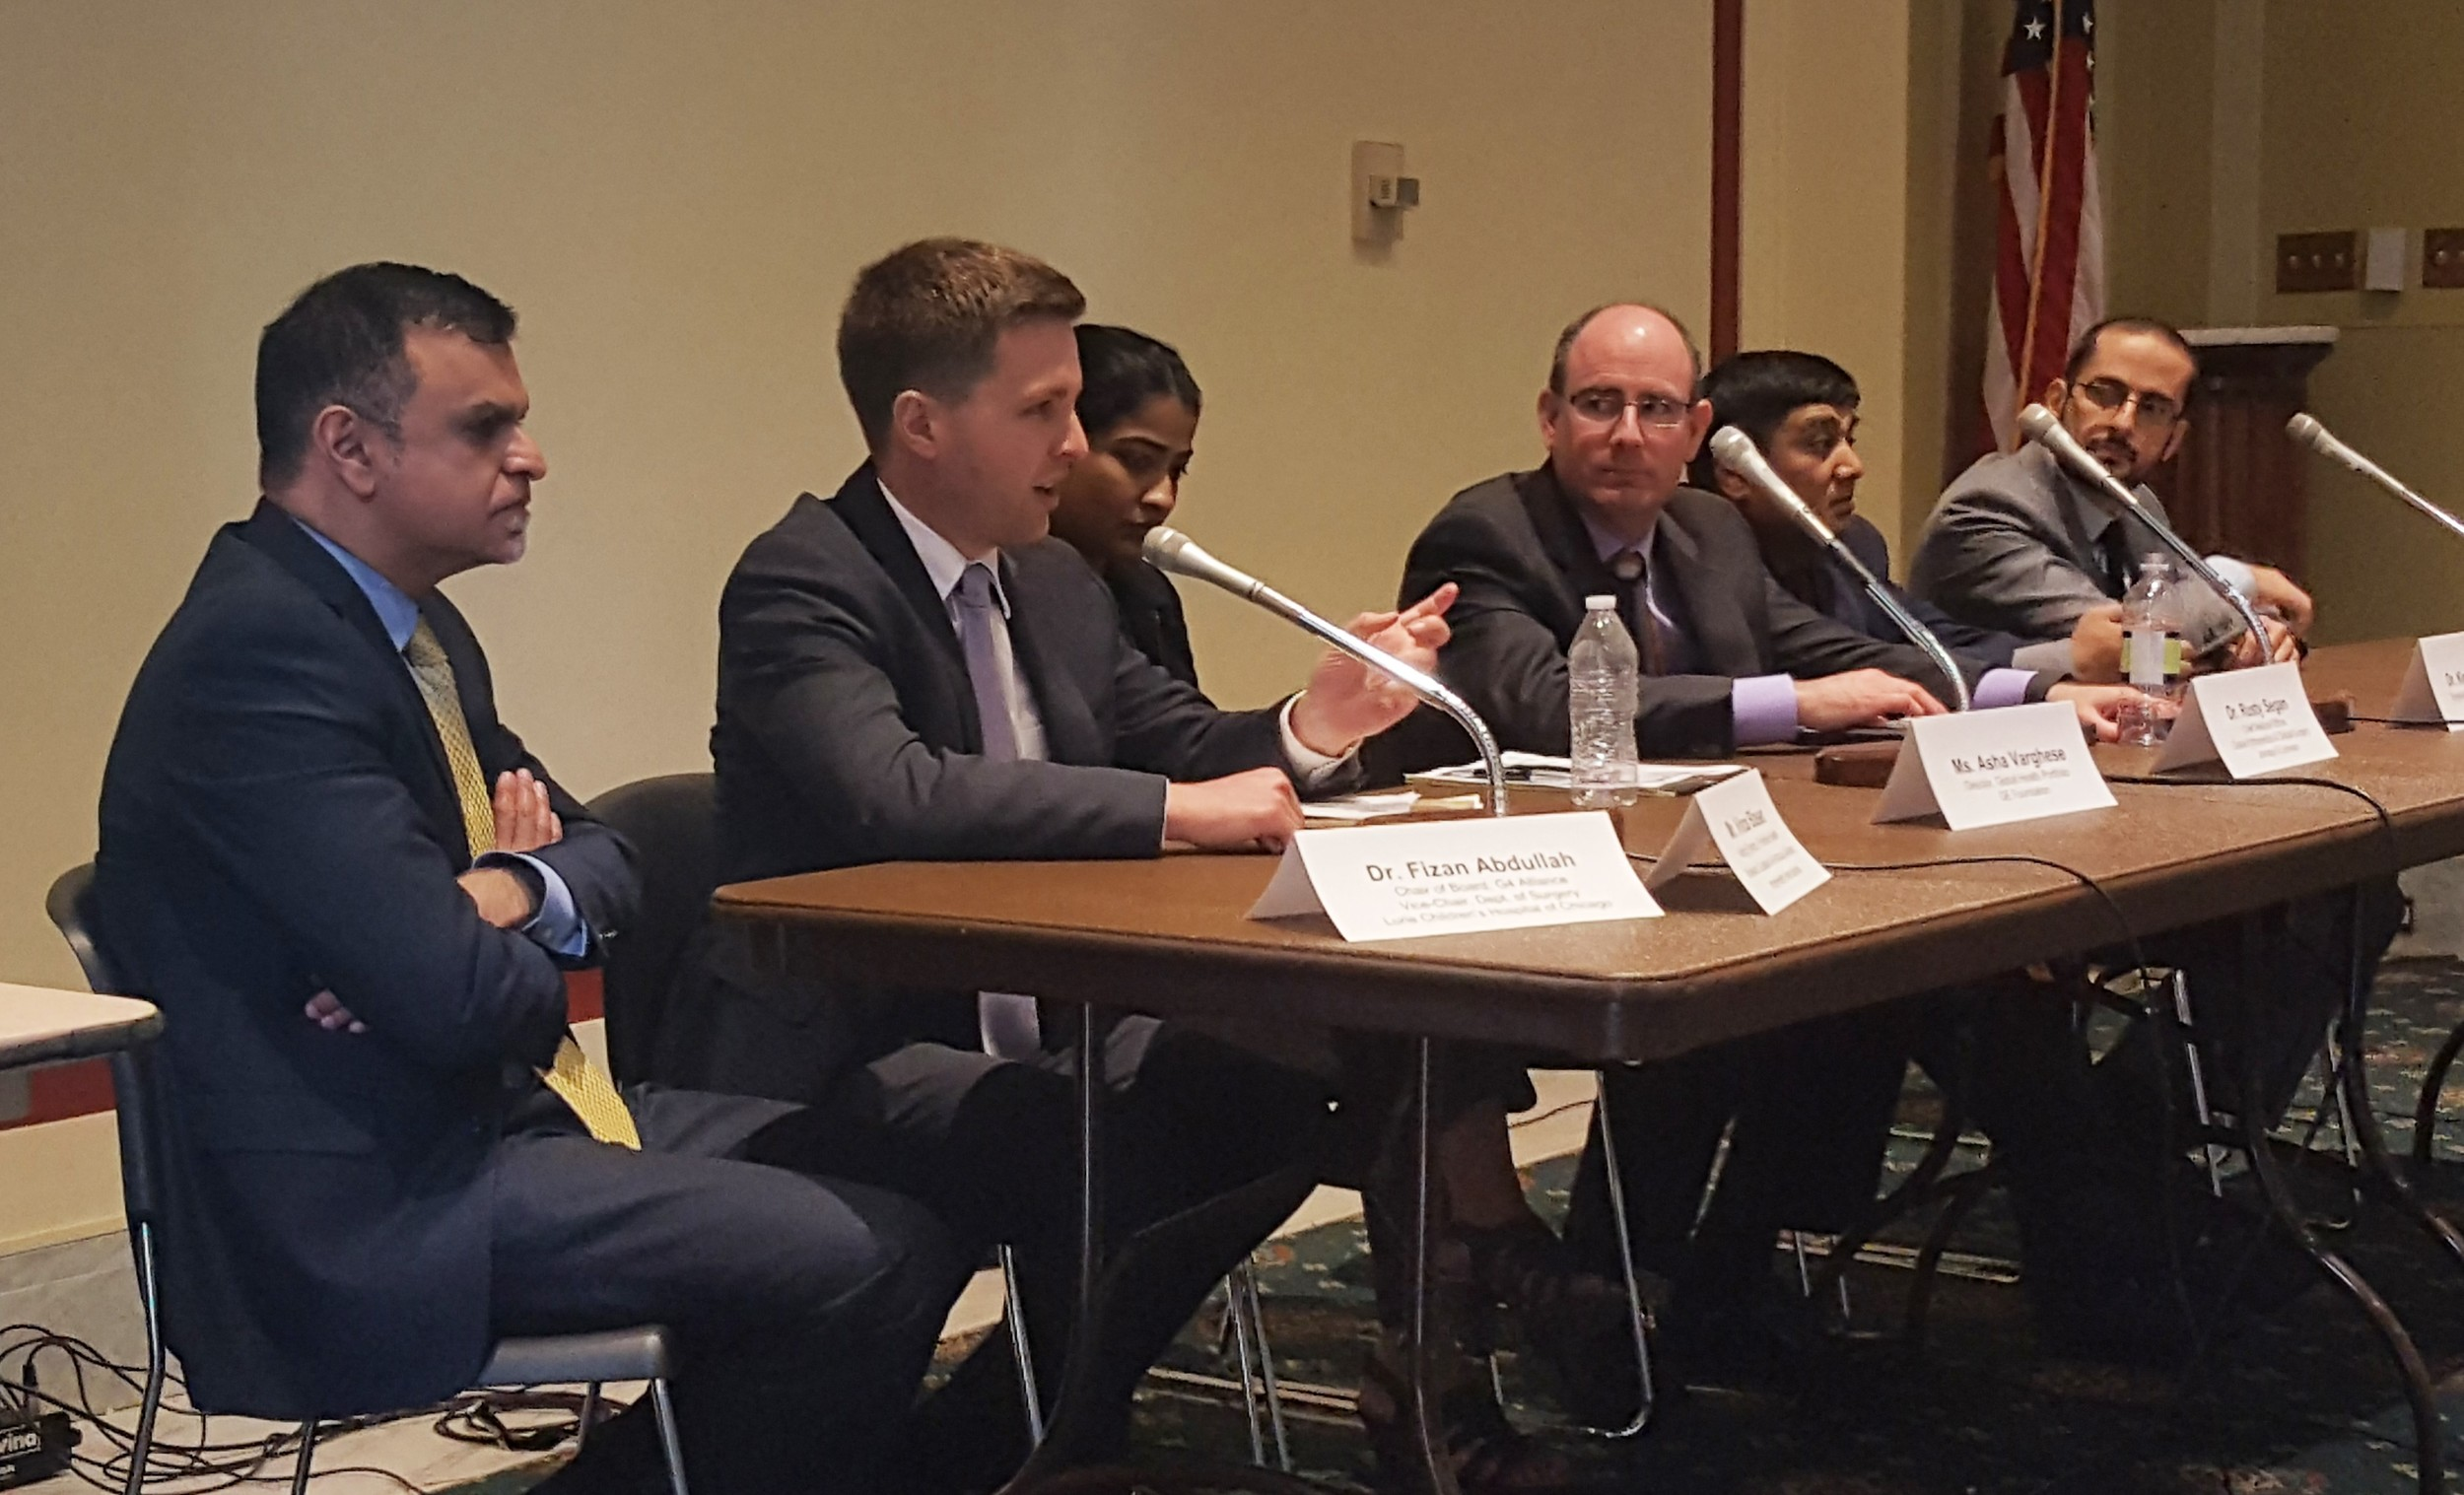 Vince Blaser (IntraHealth International & Frontline Health Workers Coalition) responds to a question about H.Res 419, a House resolution to address gaps in support and training for frontline health workers in low-and middle-income countries.